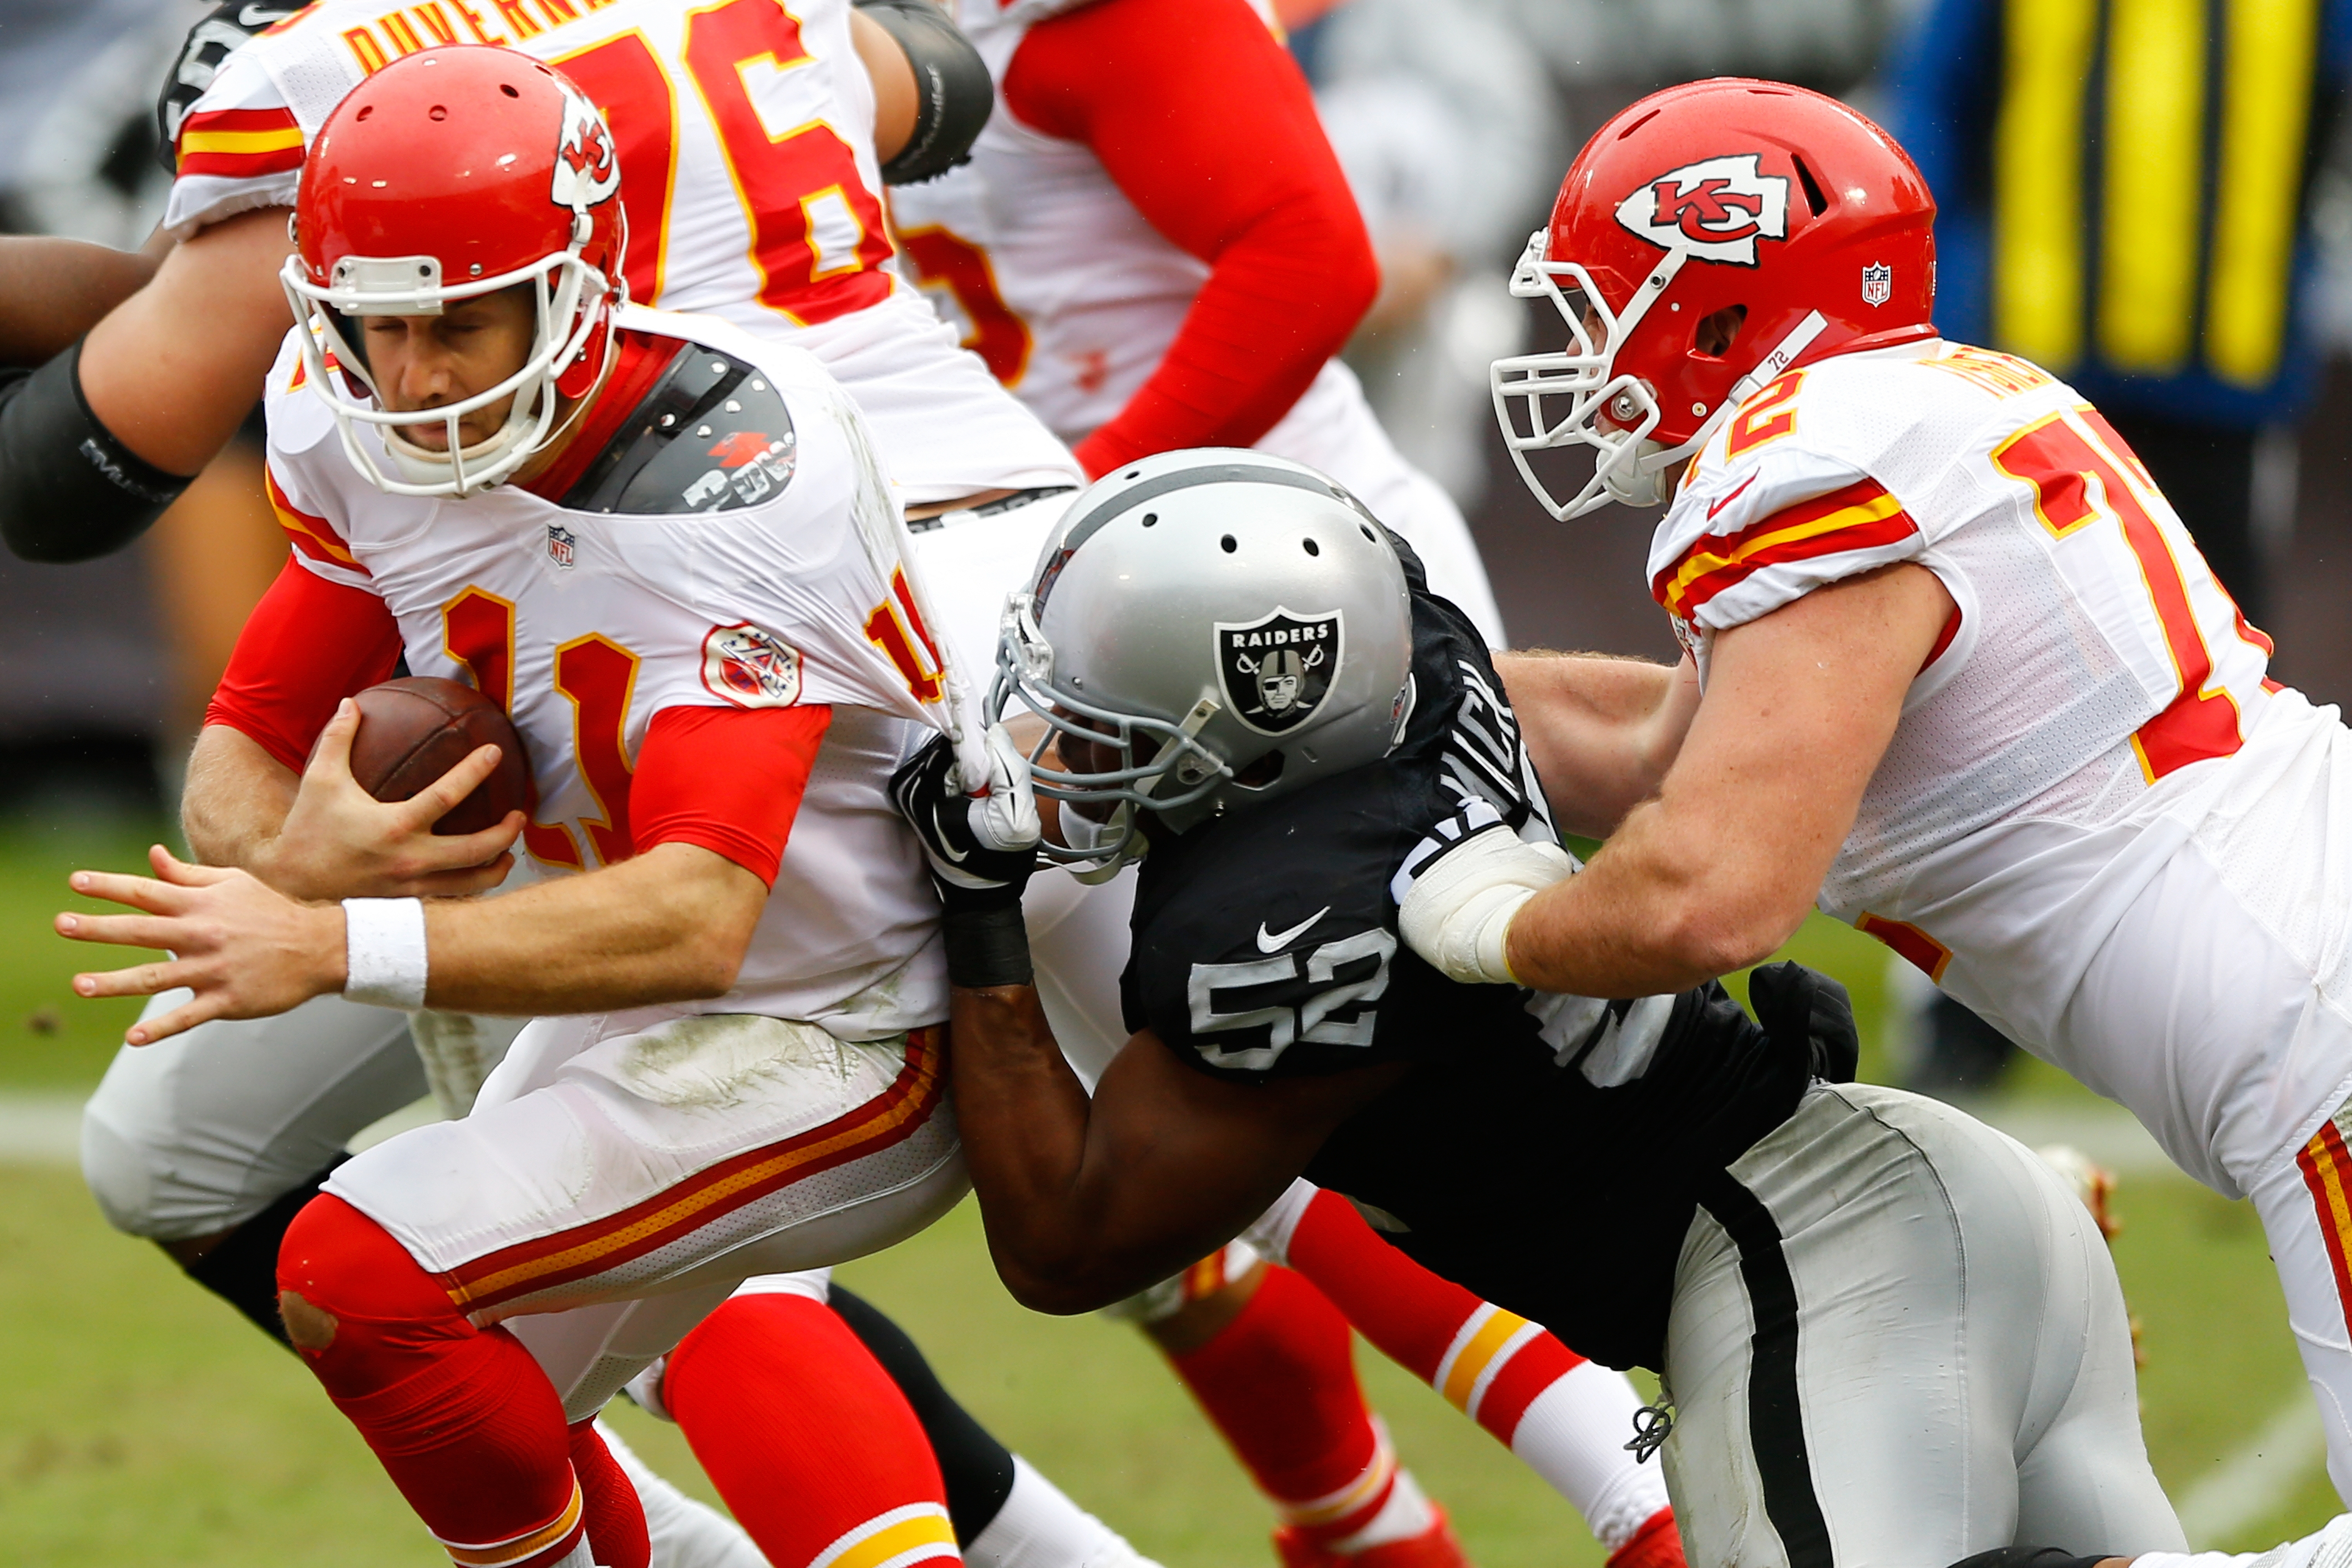 Khalil Mack last season became the first player in NFL history voted first-team All-Pro at two positions. Some former stars look on in awe and wonder how best to define him.